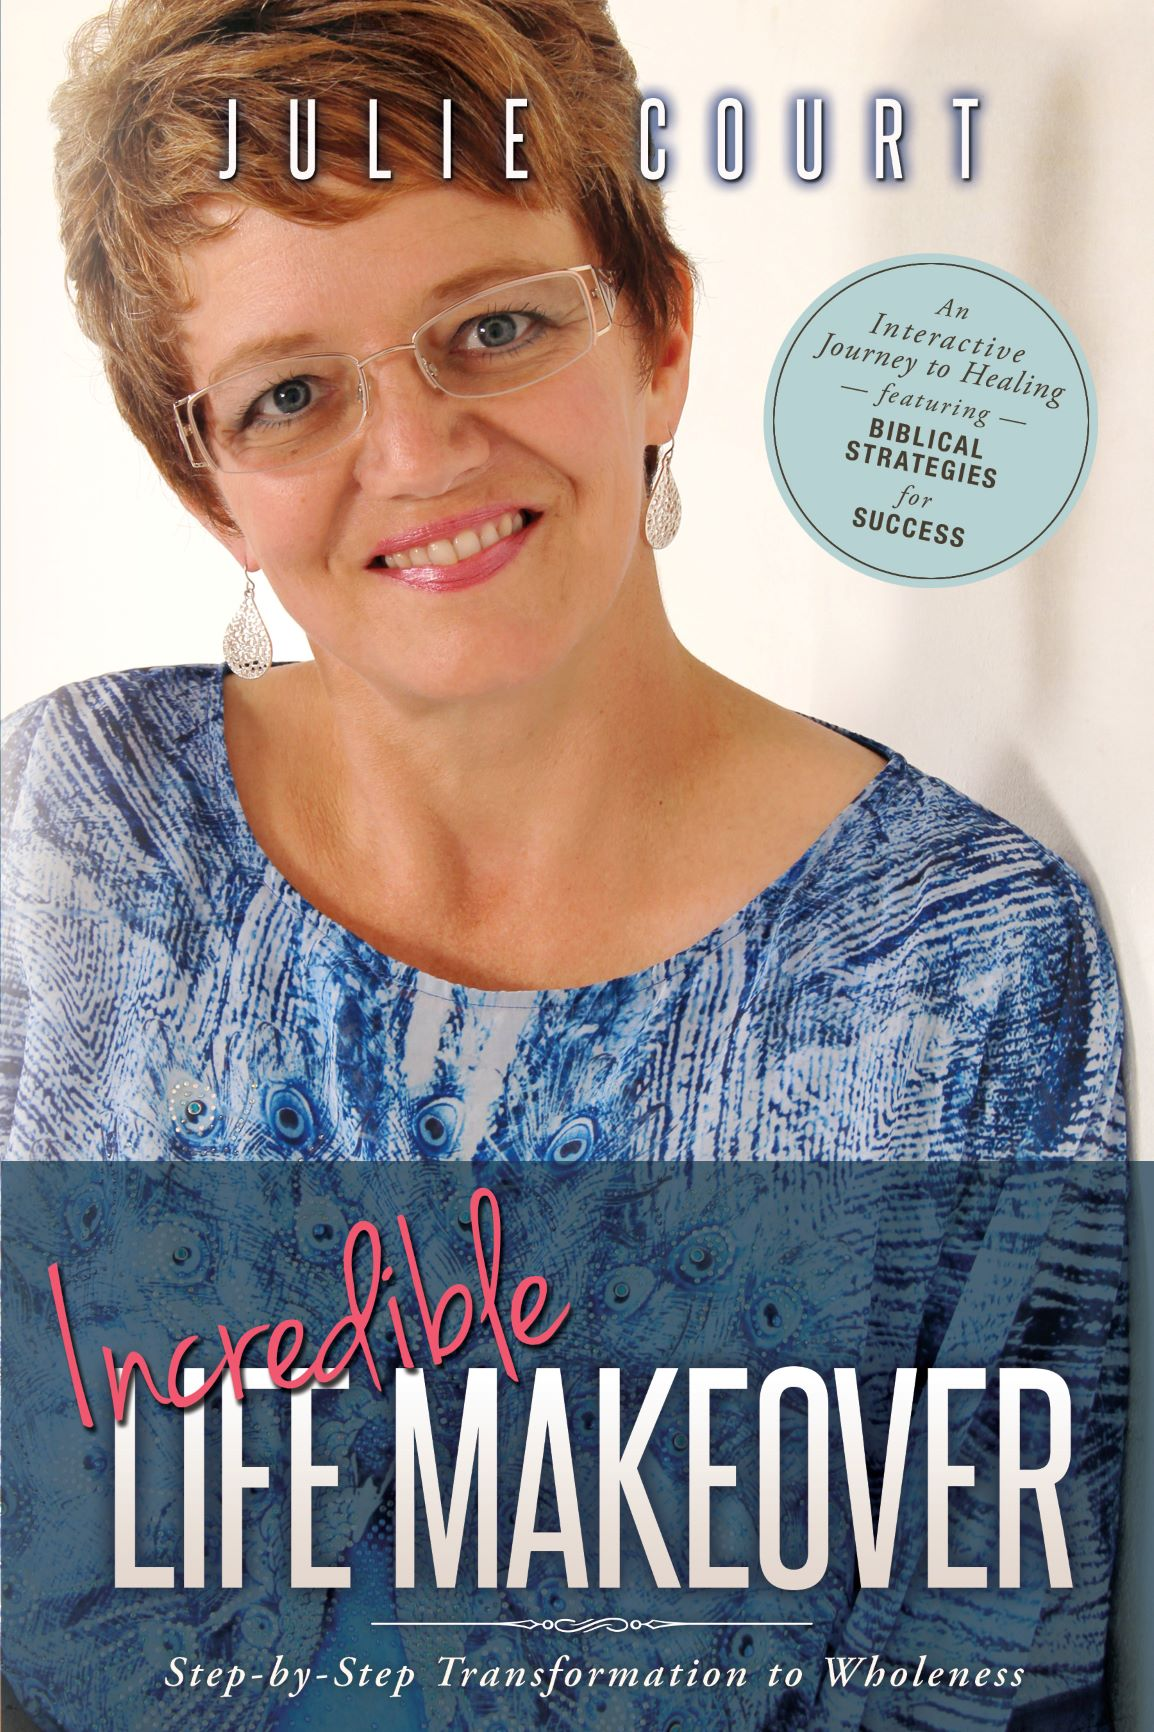 Julie Court Life Makeover